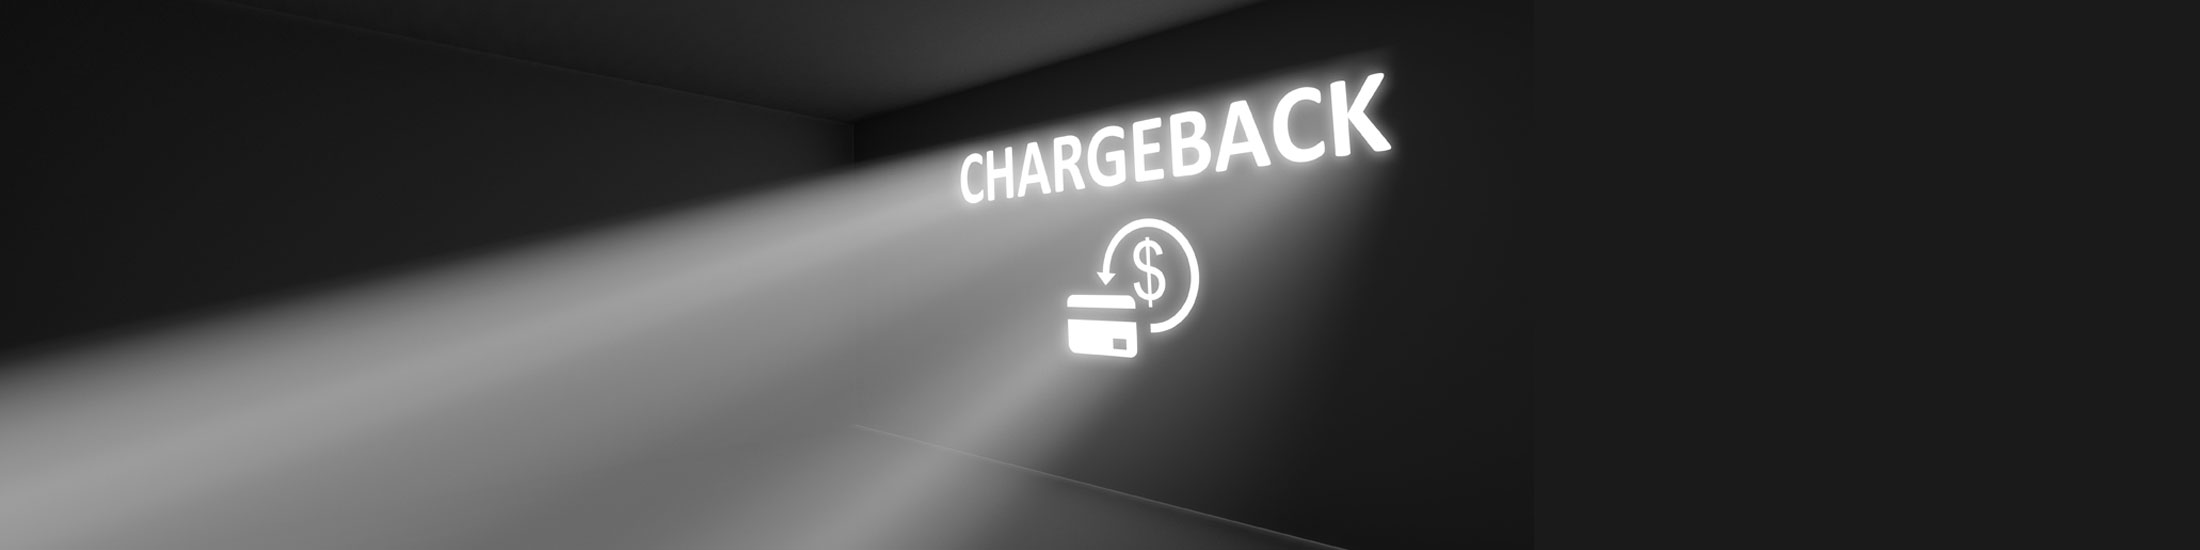 Expect Chargebacks to Grow This Holiday Season